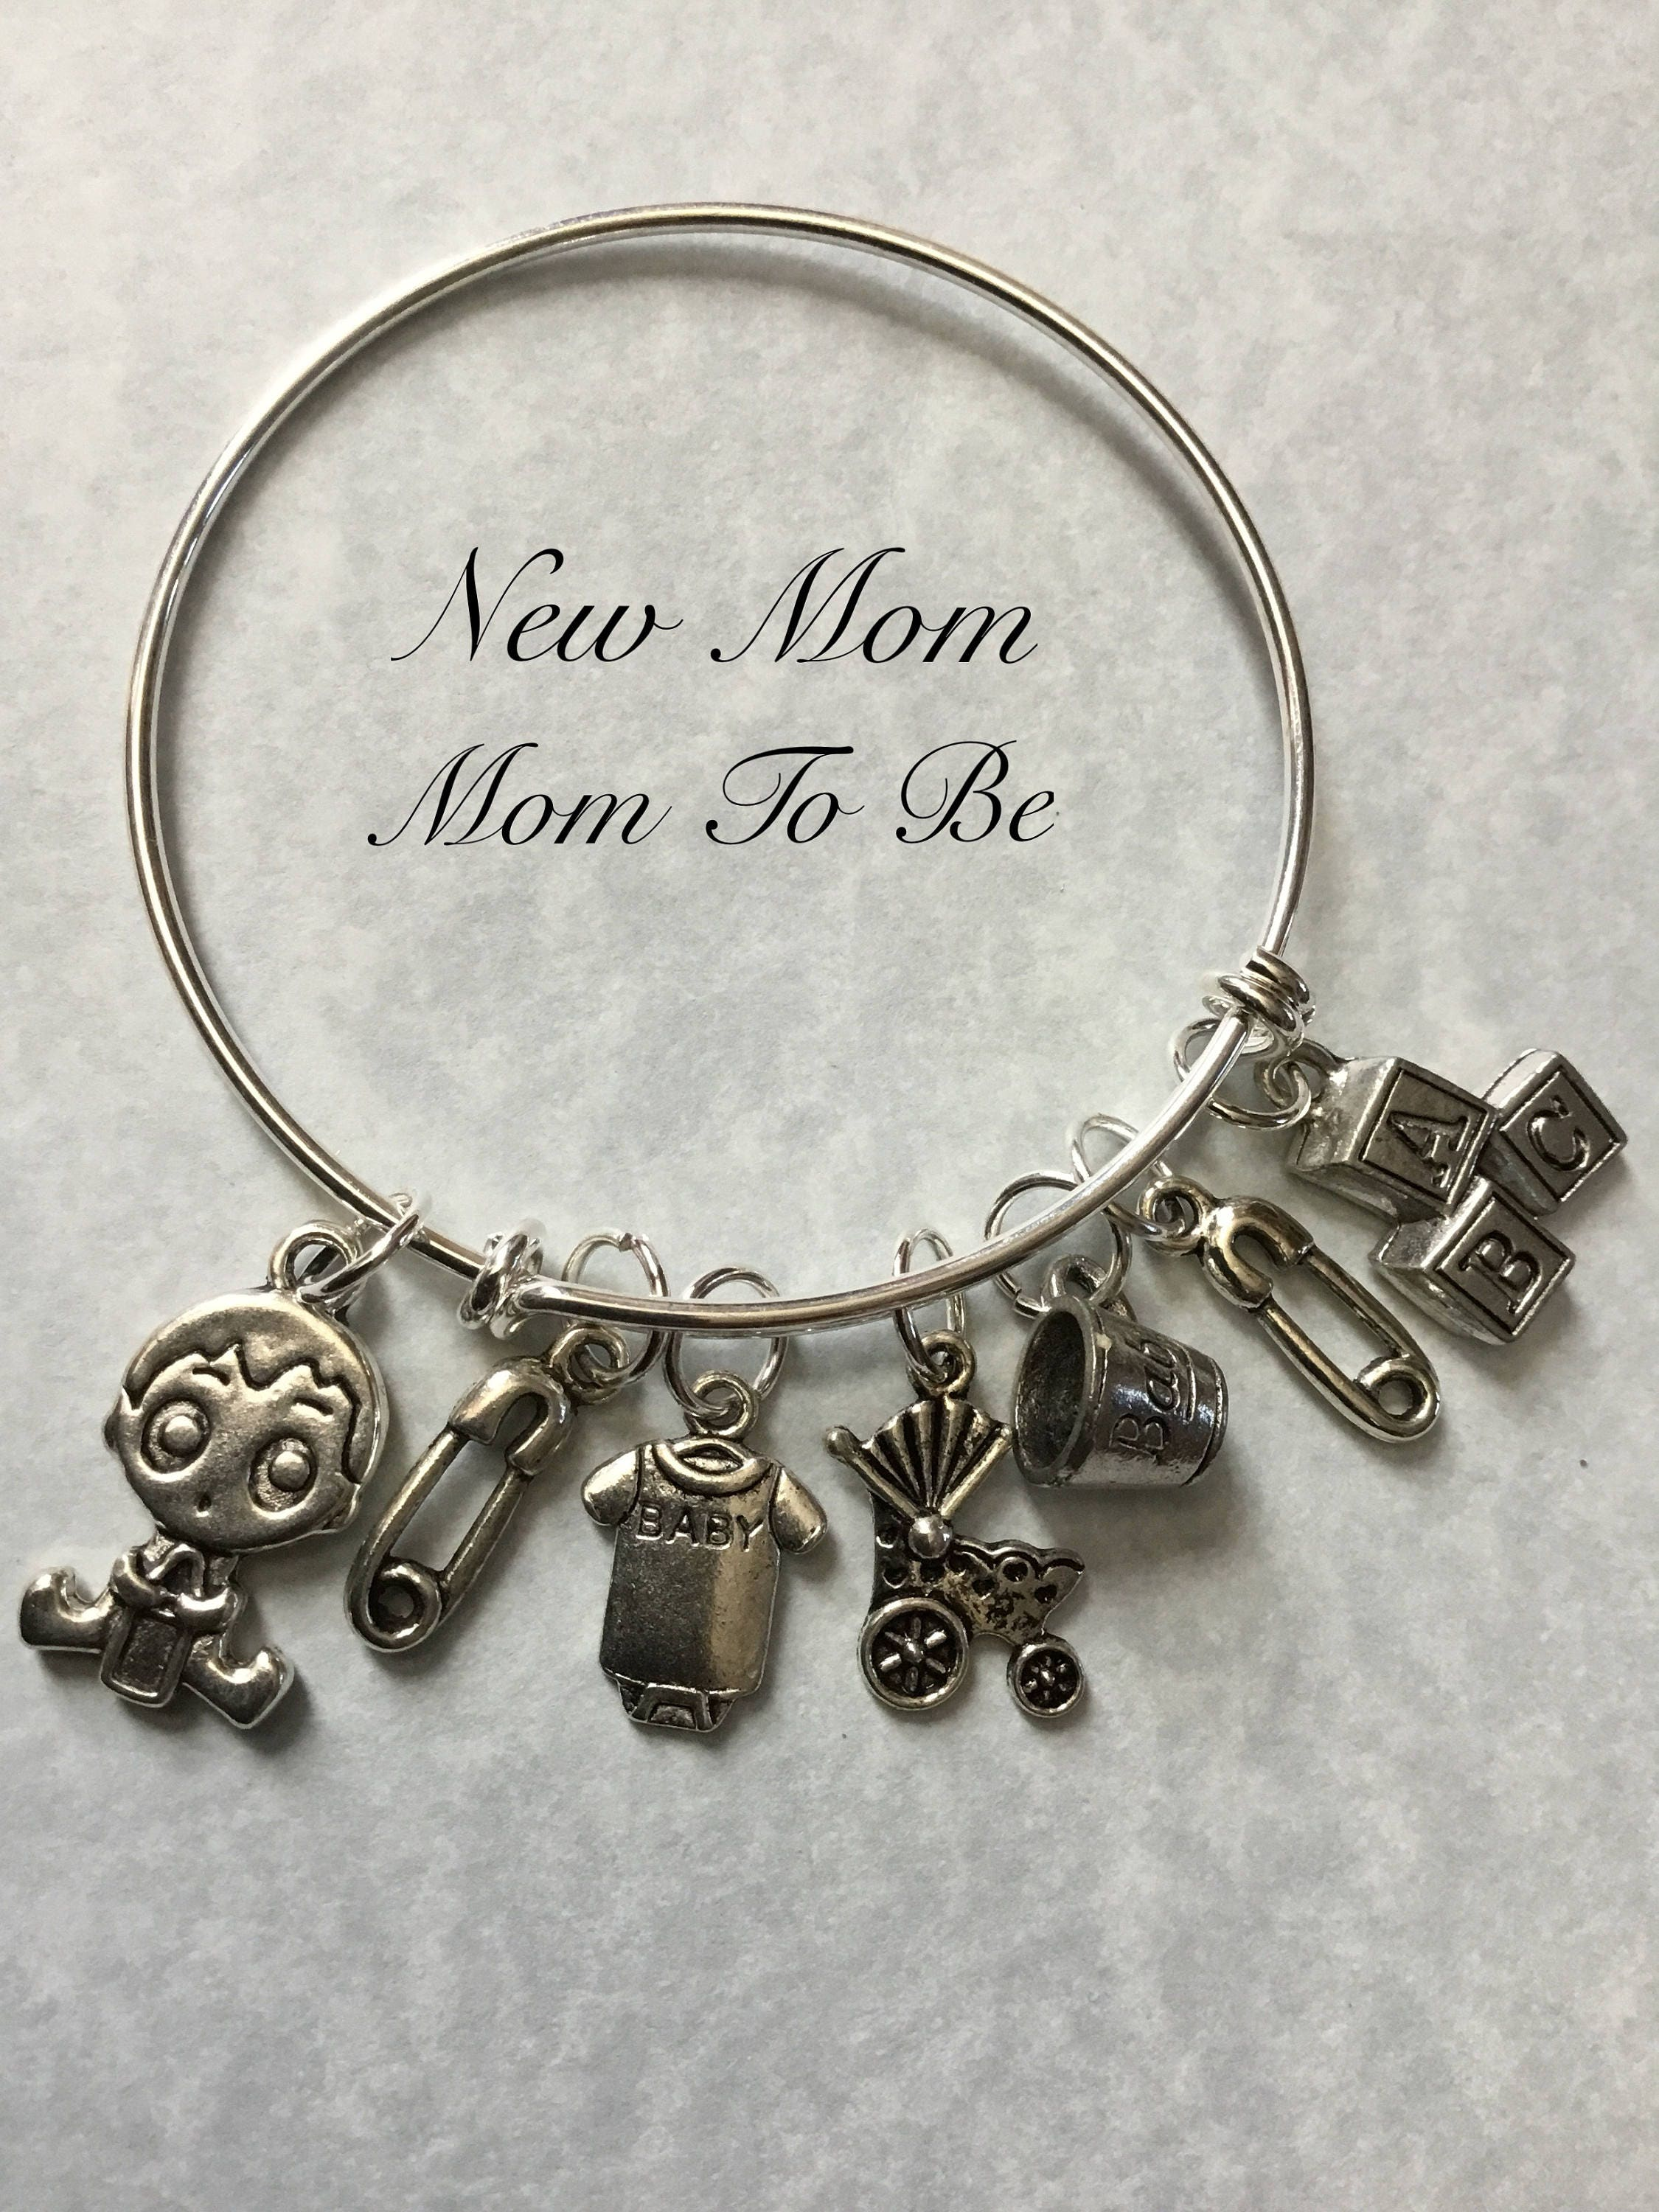 adjustable made a bangle charm stackable custom mom designmejewelry bangles buy by crafted mother hand bracelet child birthstone